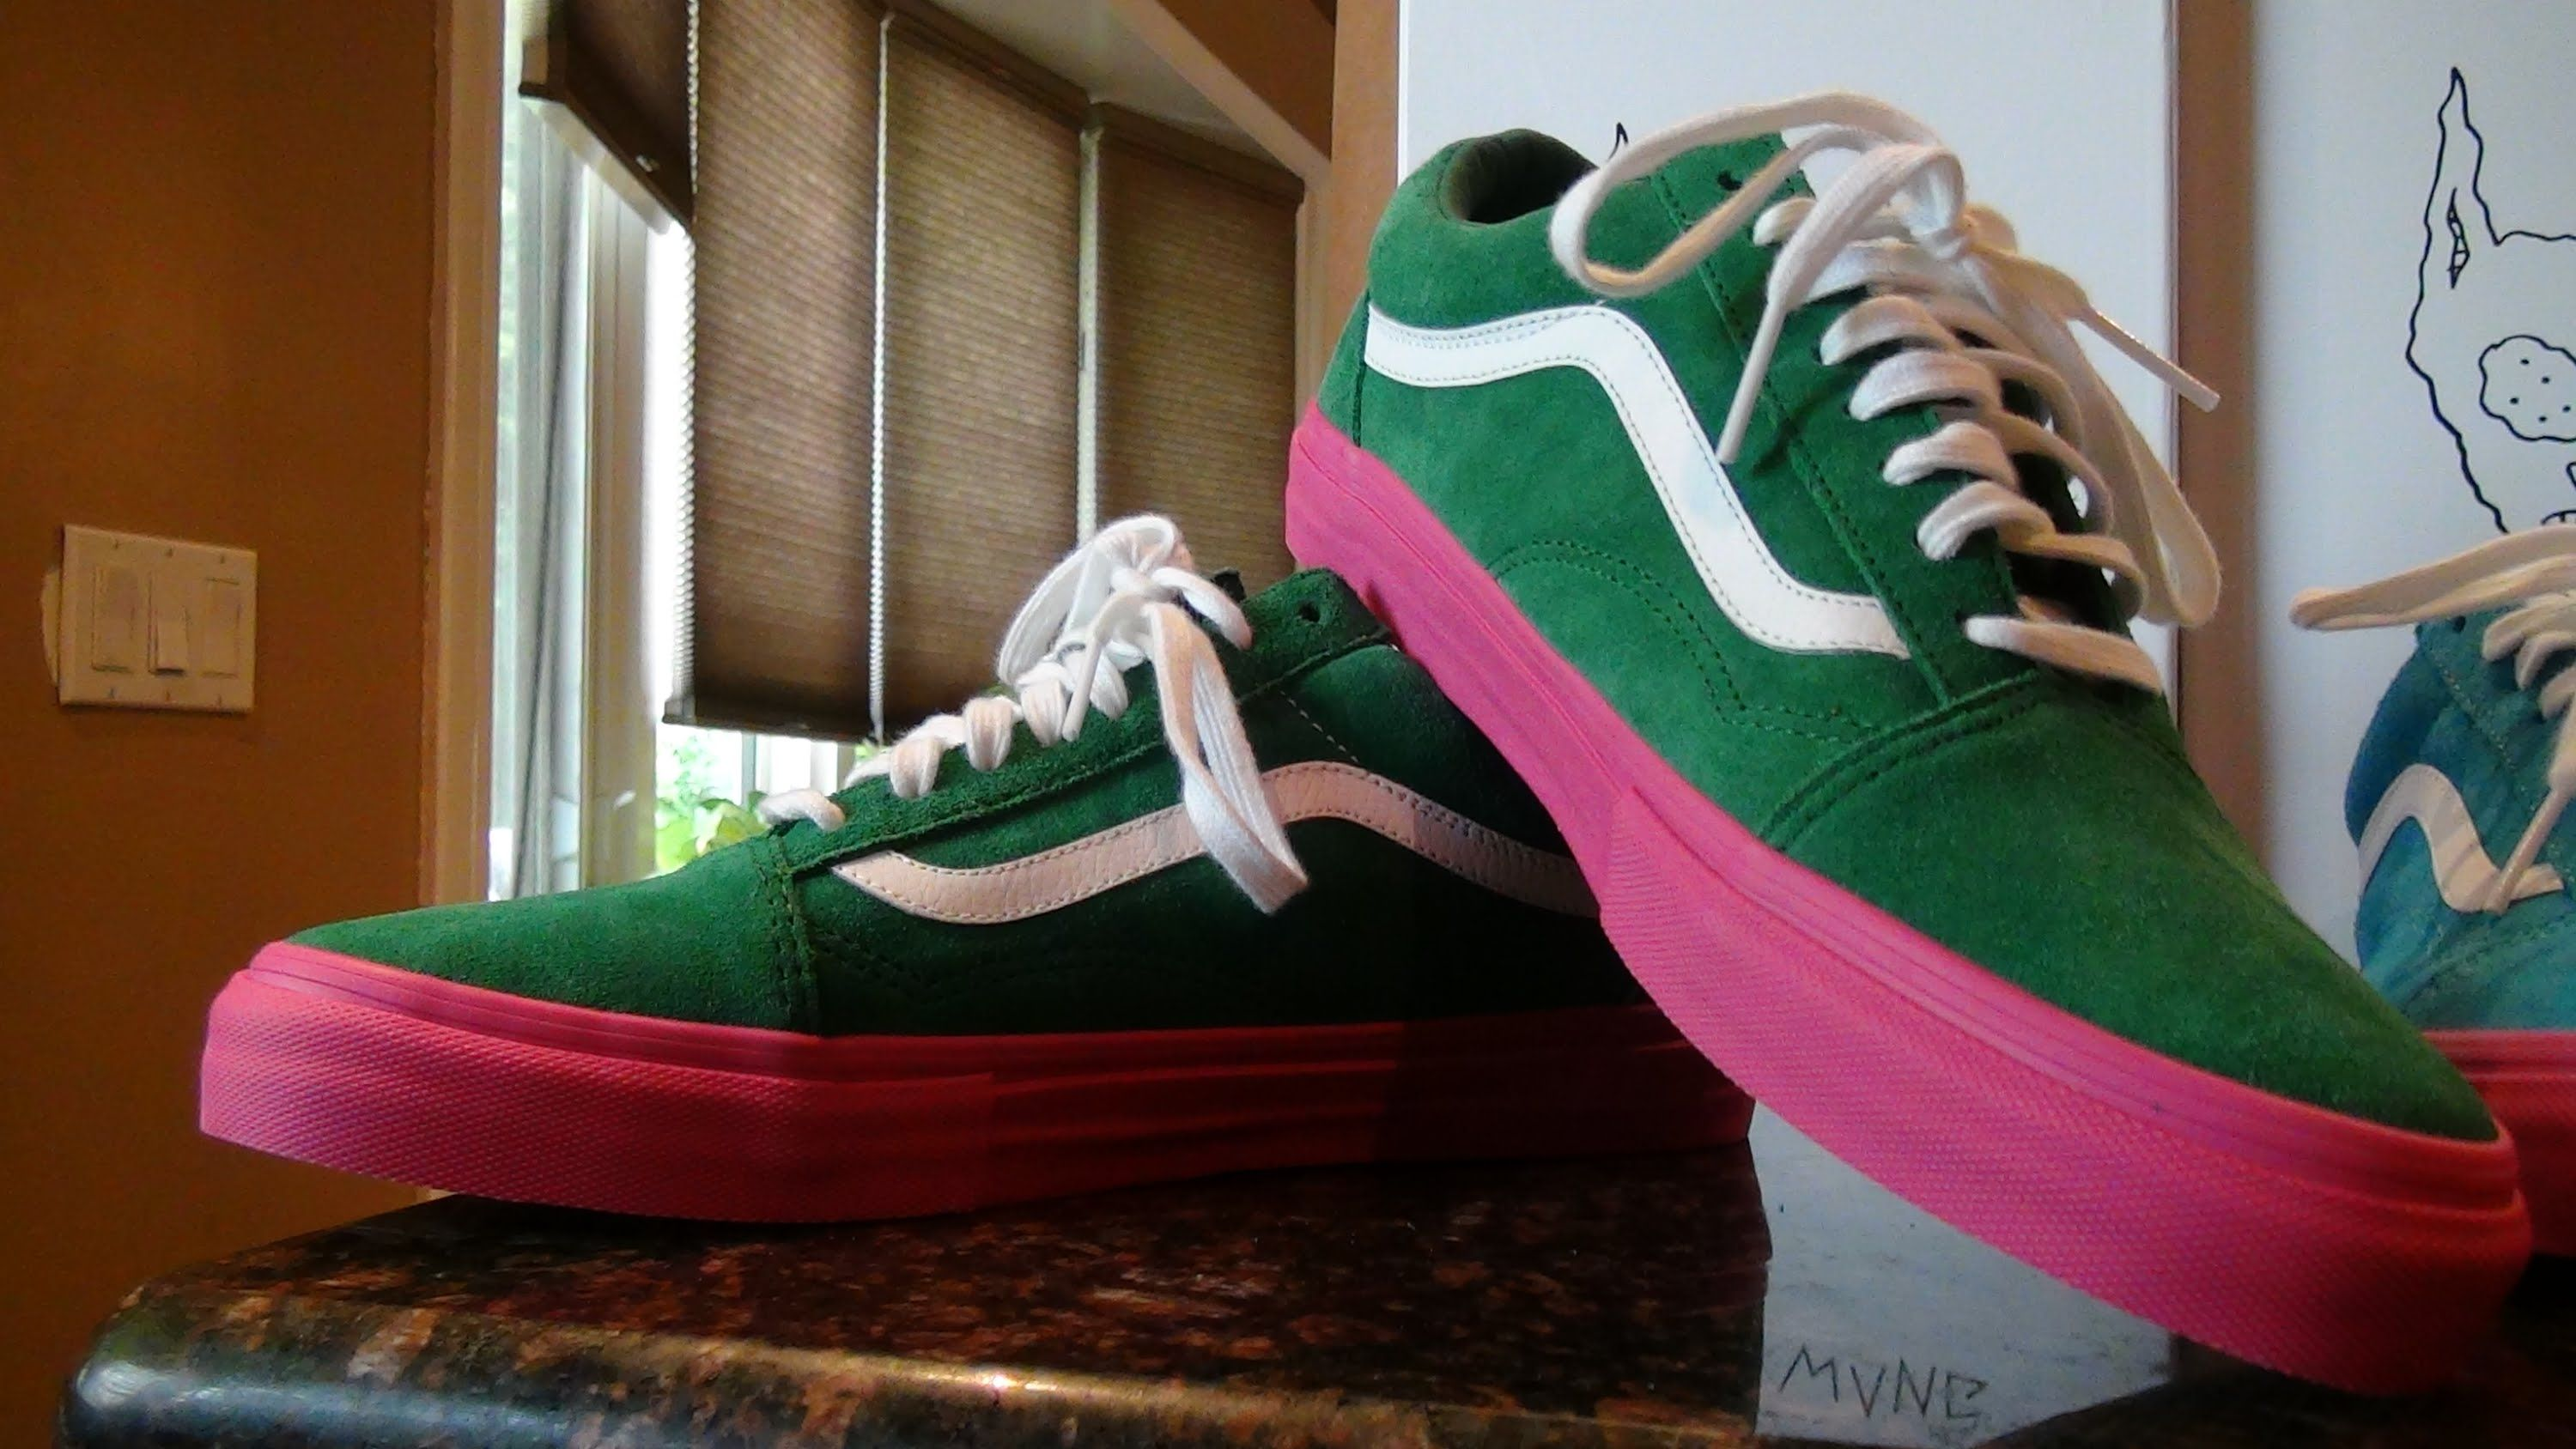 b42ca91f9ec Odd Future Golf Wang X Vans Syndicate Old Skool Pro Green - YouTube ...